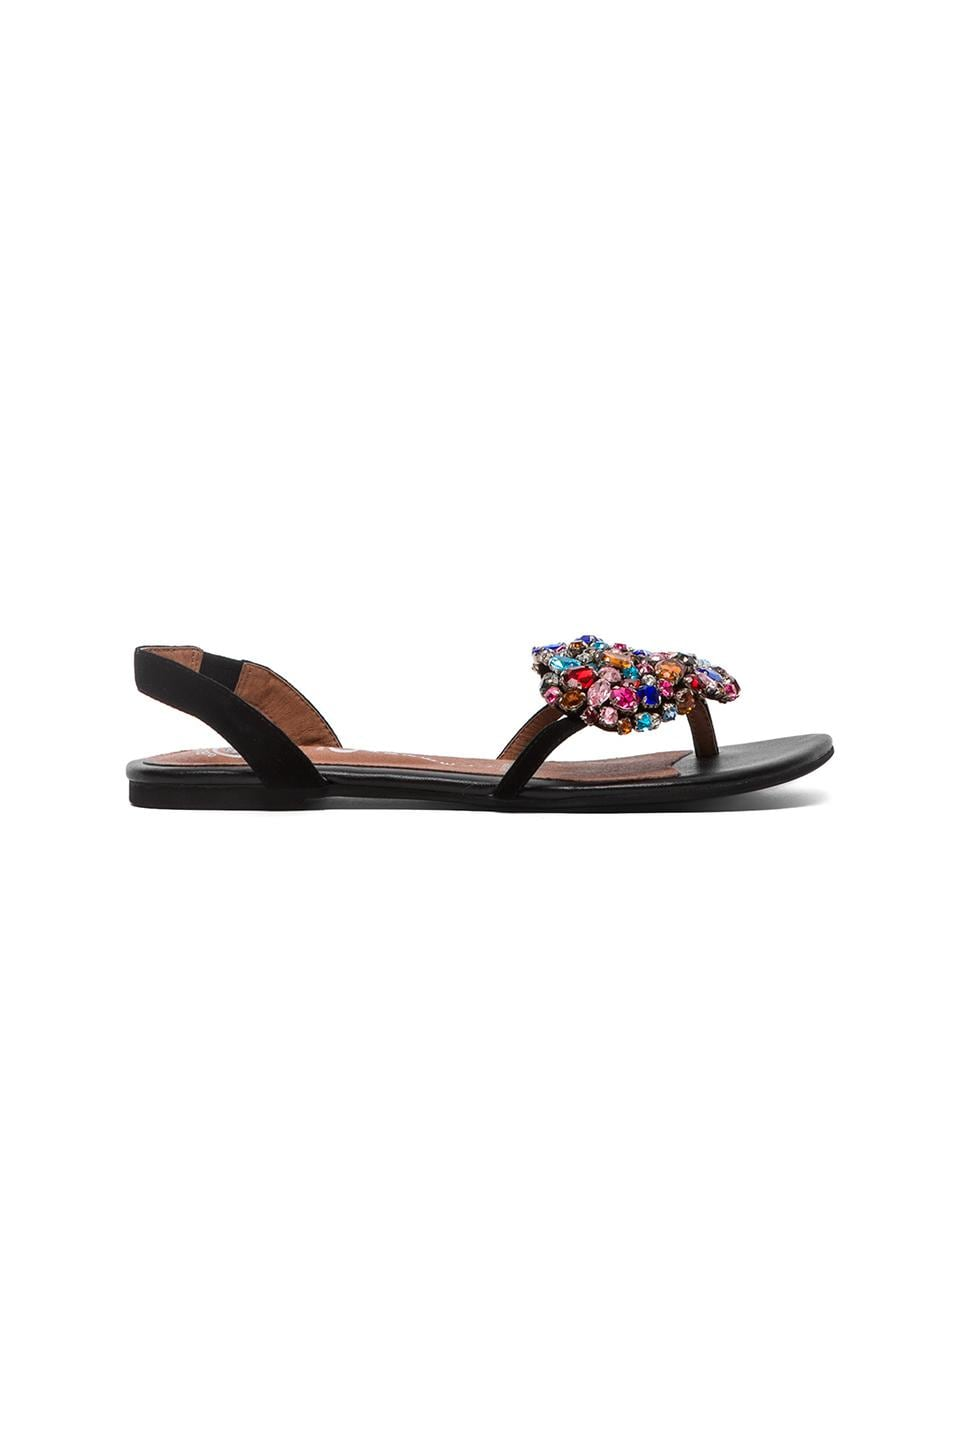 Jeffrey Campbell Coeur Embellished Sandal in Black Suede